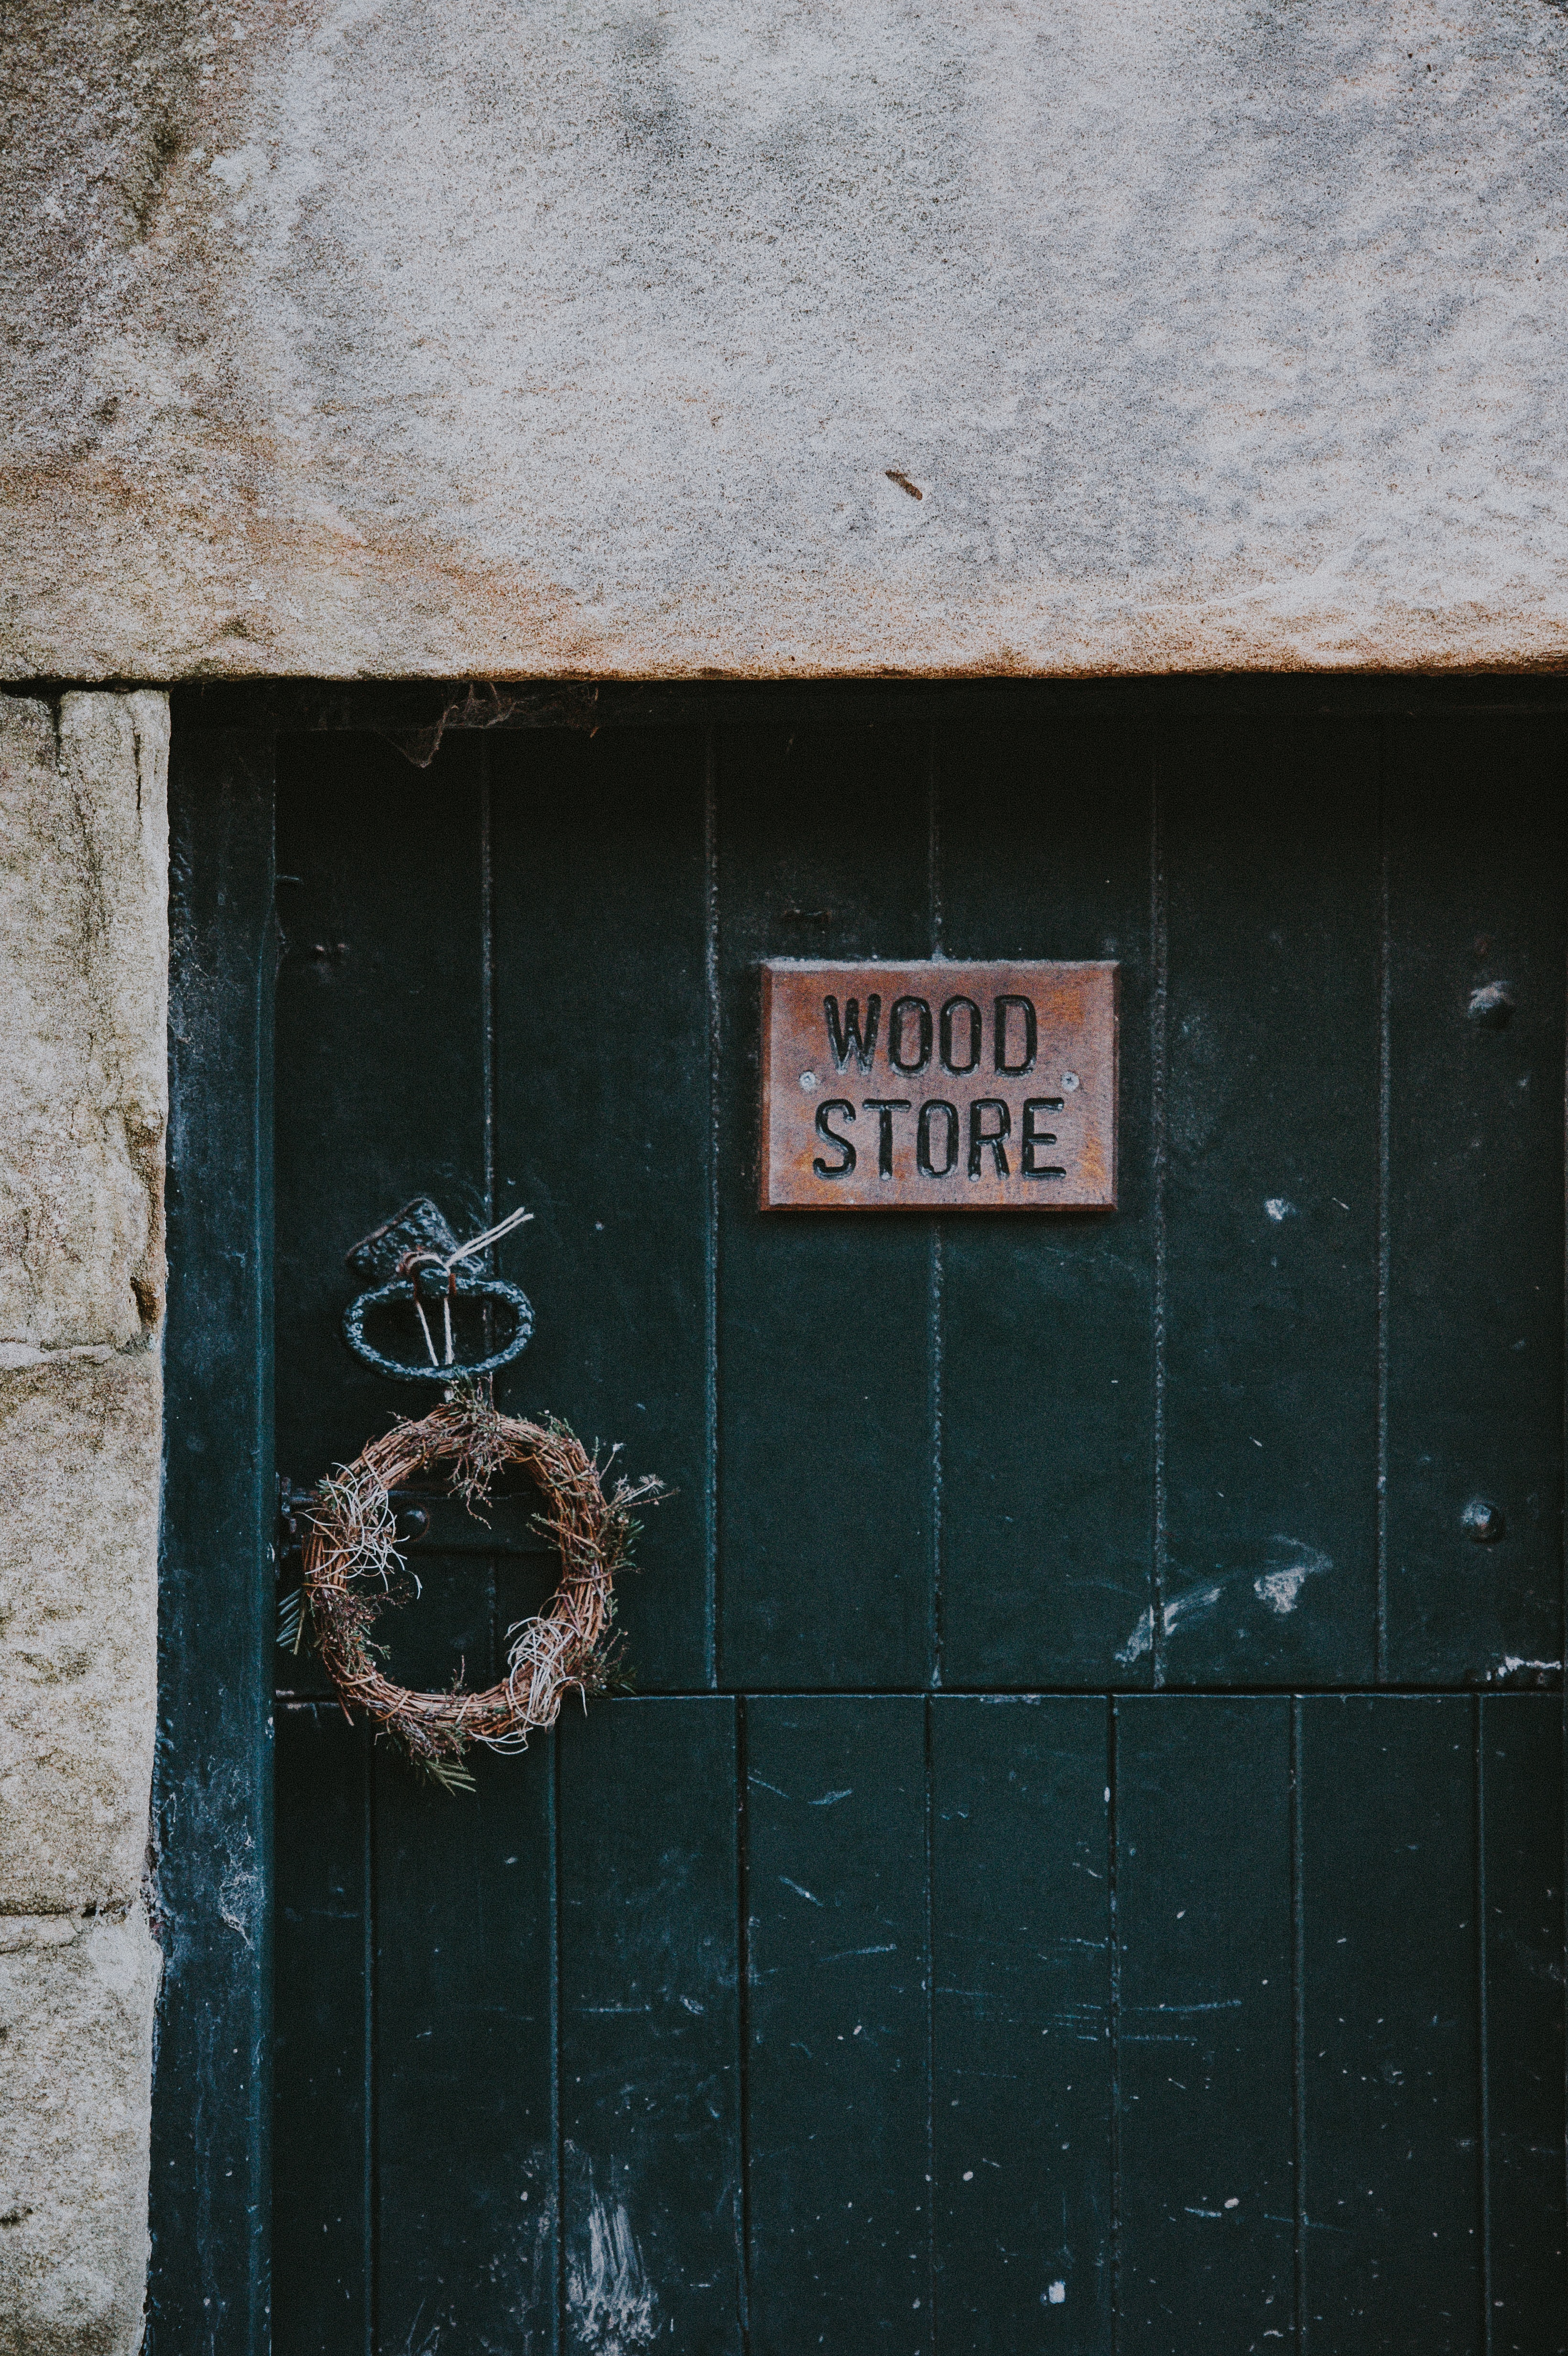 Wood Store signage on wall